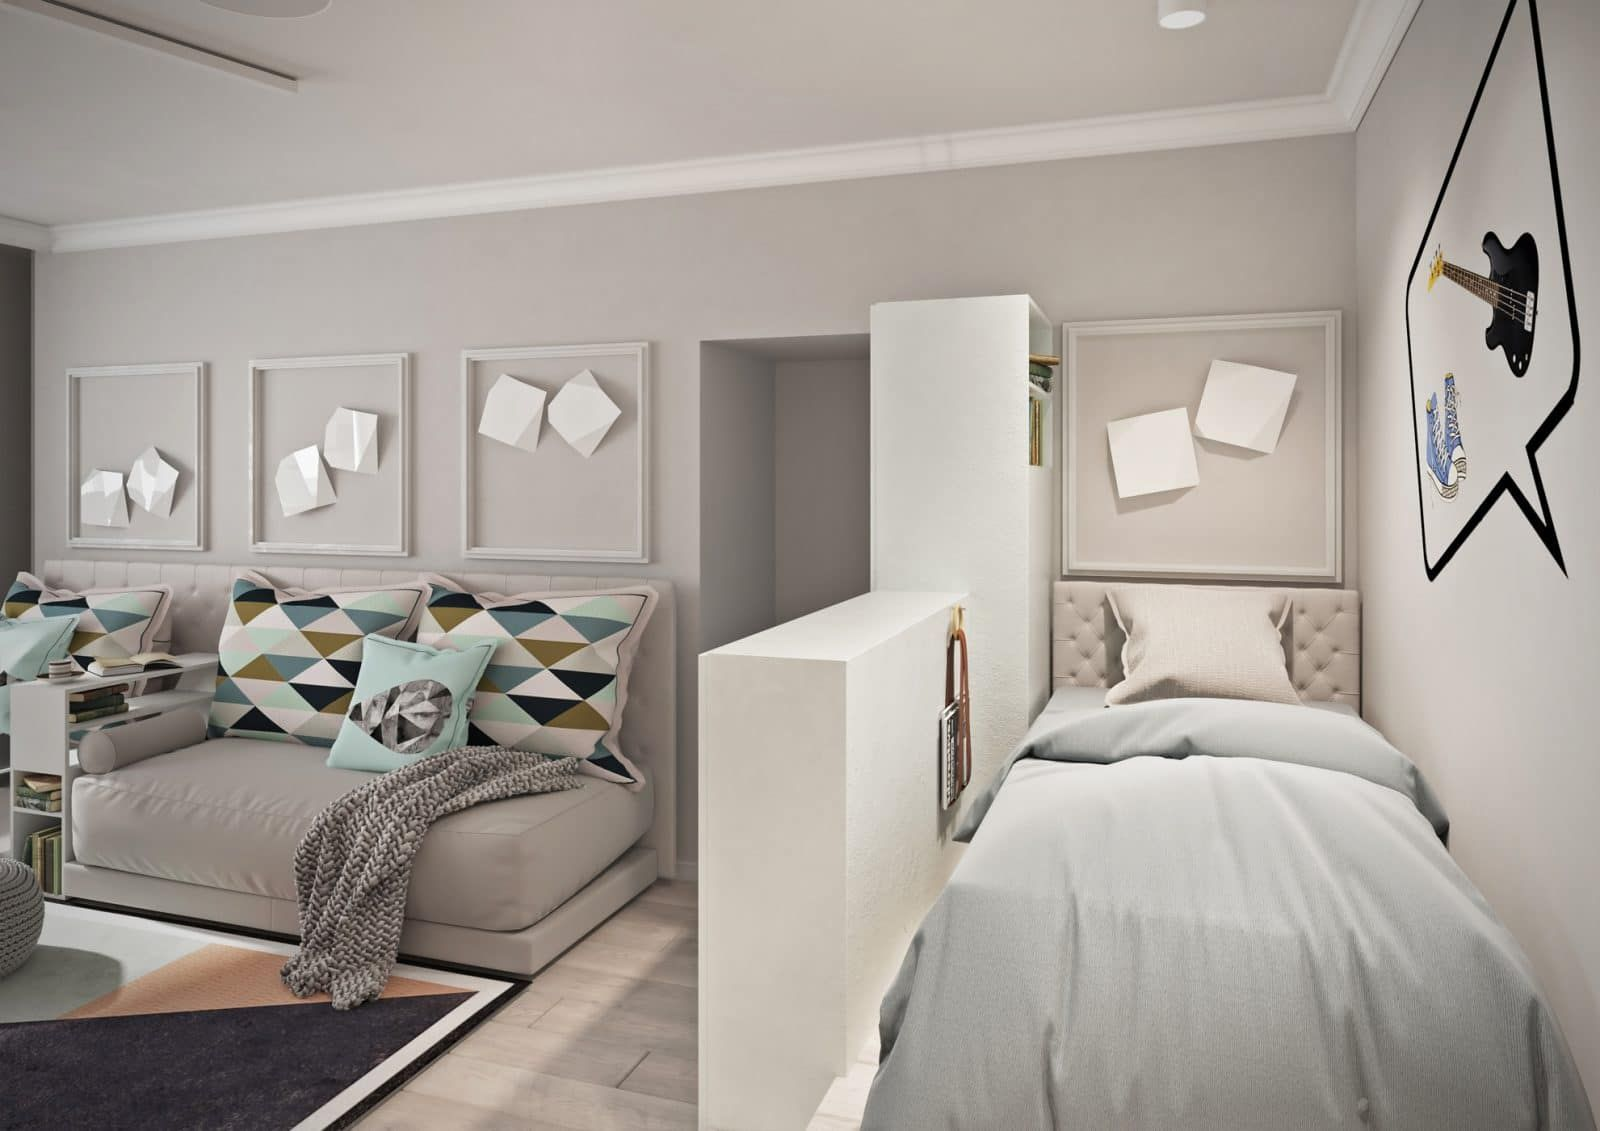 Studio Apartment Bedroom: Design Ideas and Pro Designers' Advice. Gypsum plasterboard partition between zones as pedestal for things